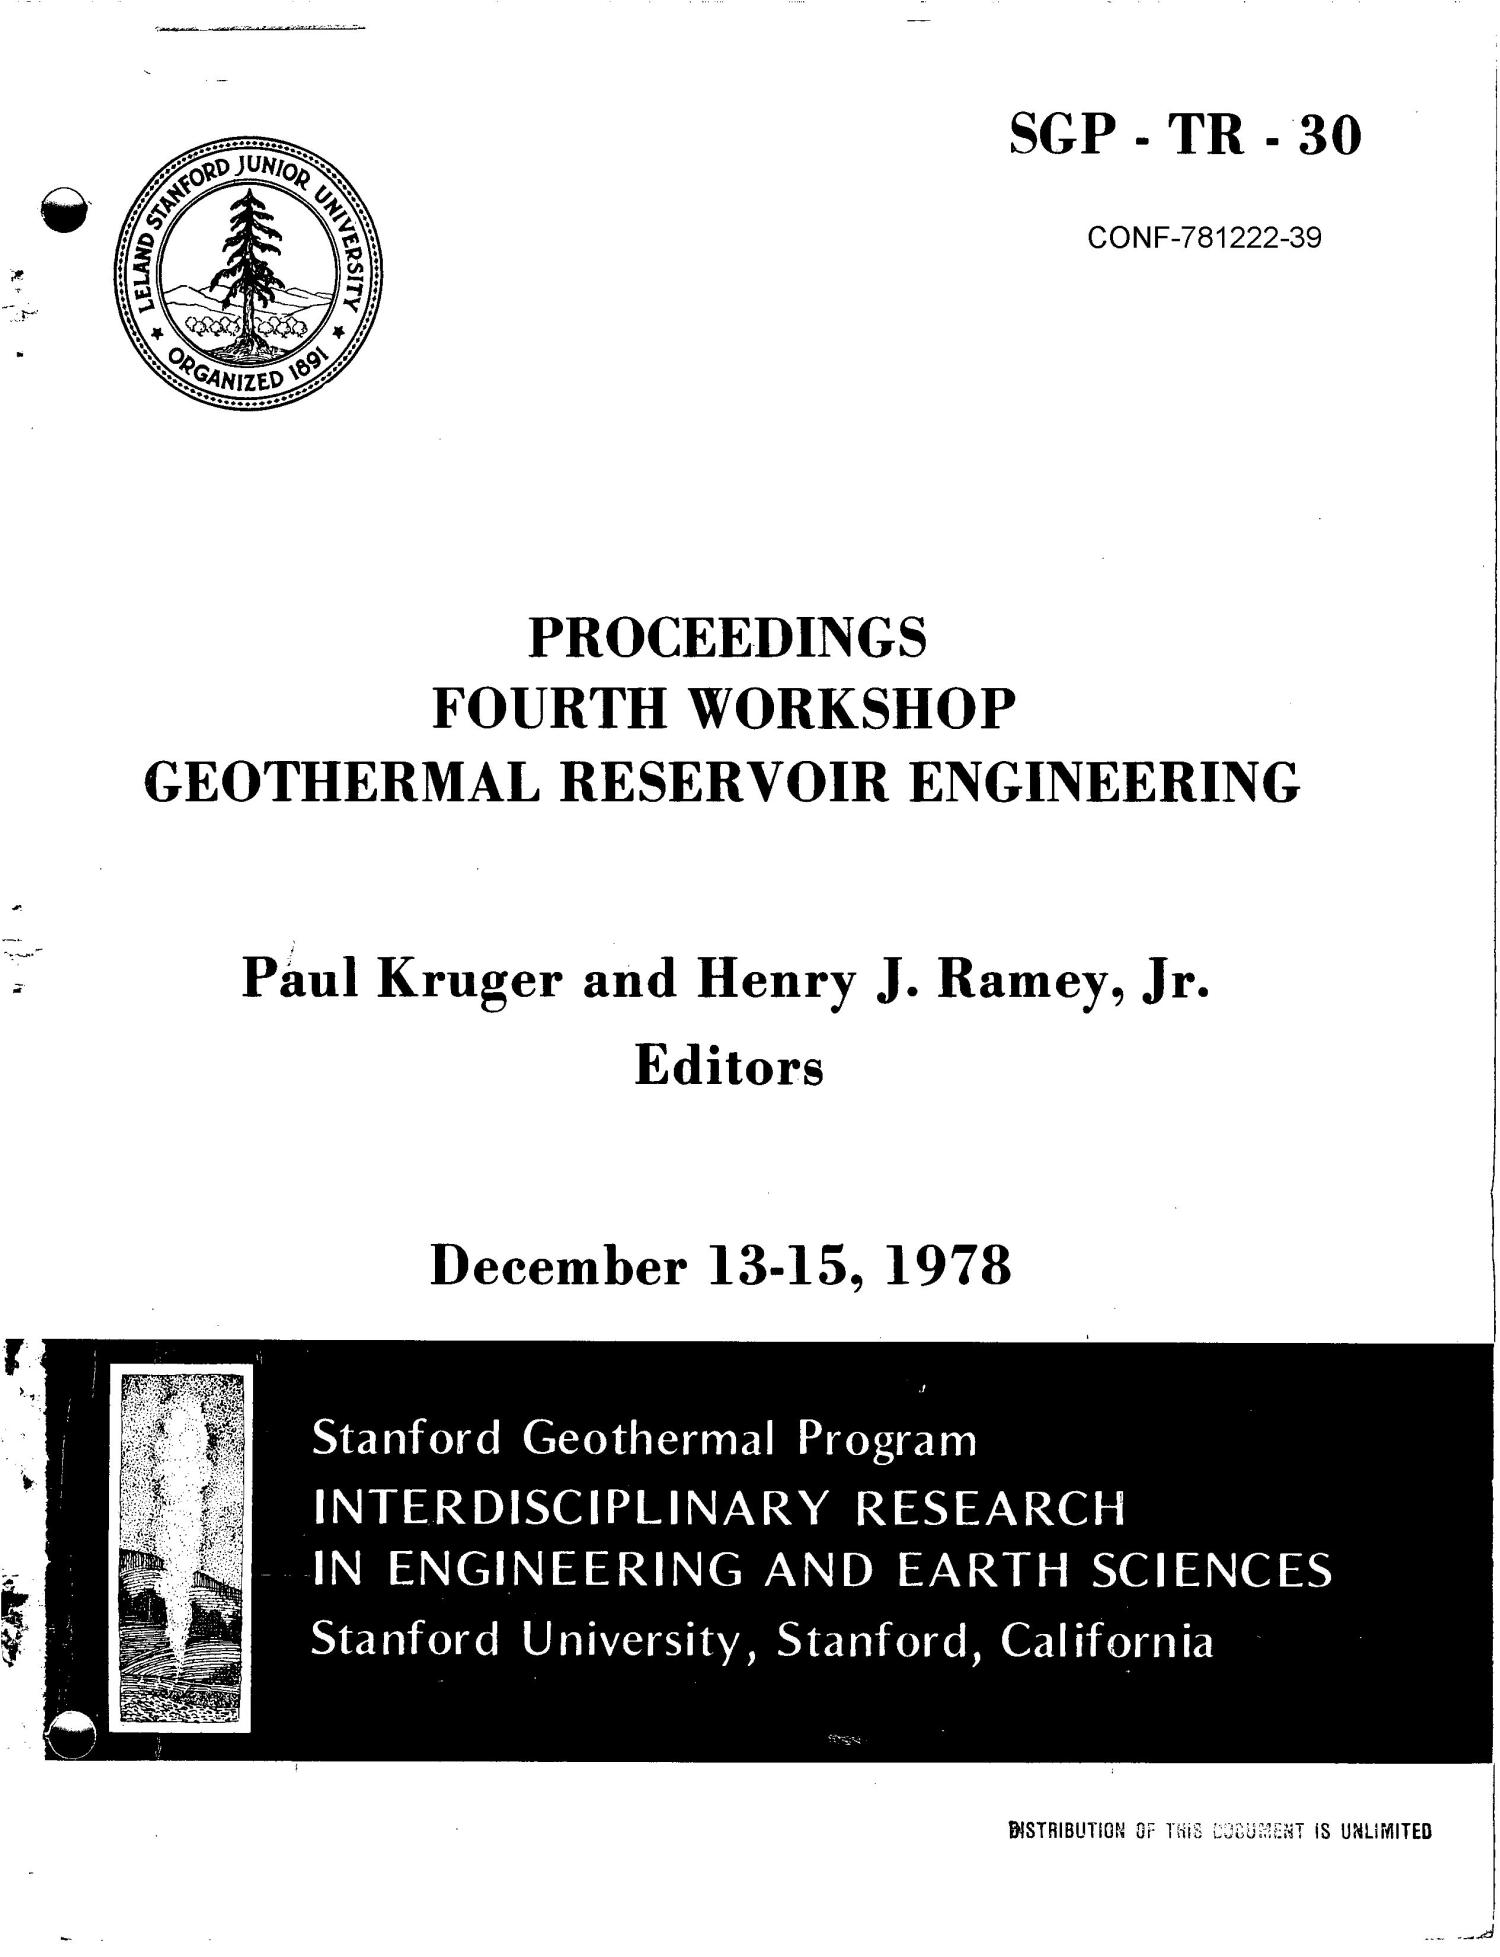 Annotated research bibliography for geothermal reservoir engineering                                                                                                      [Sequence #]: 1 of 6